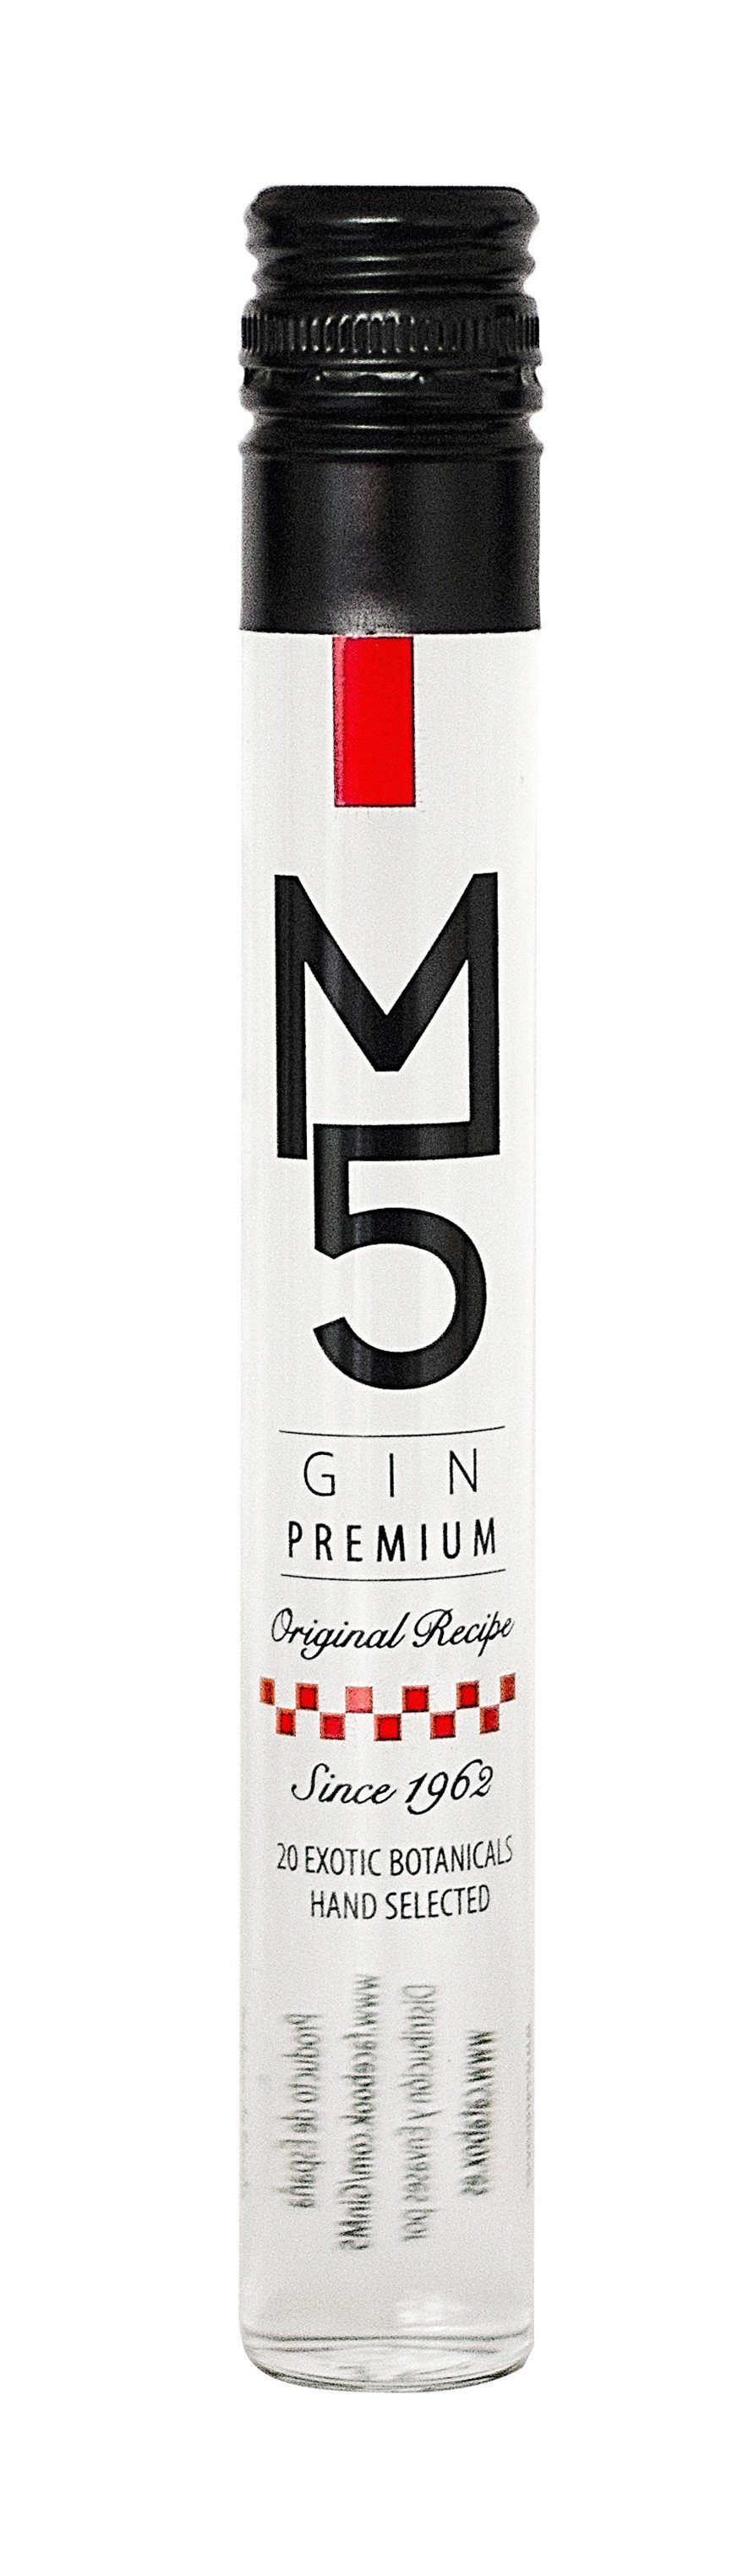 GIN M5 PREMIUM. edición Catabox.